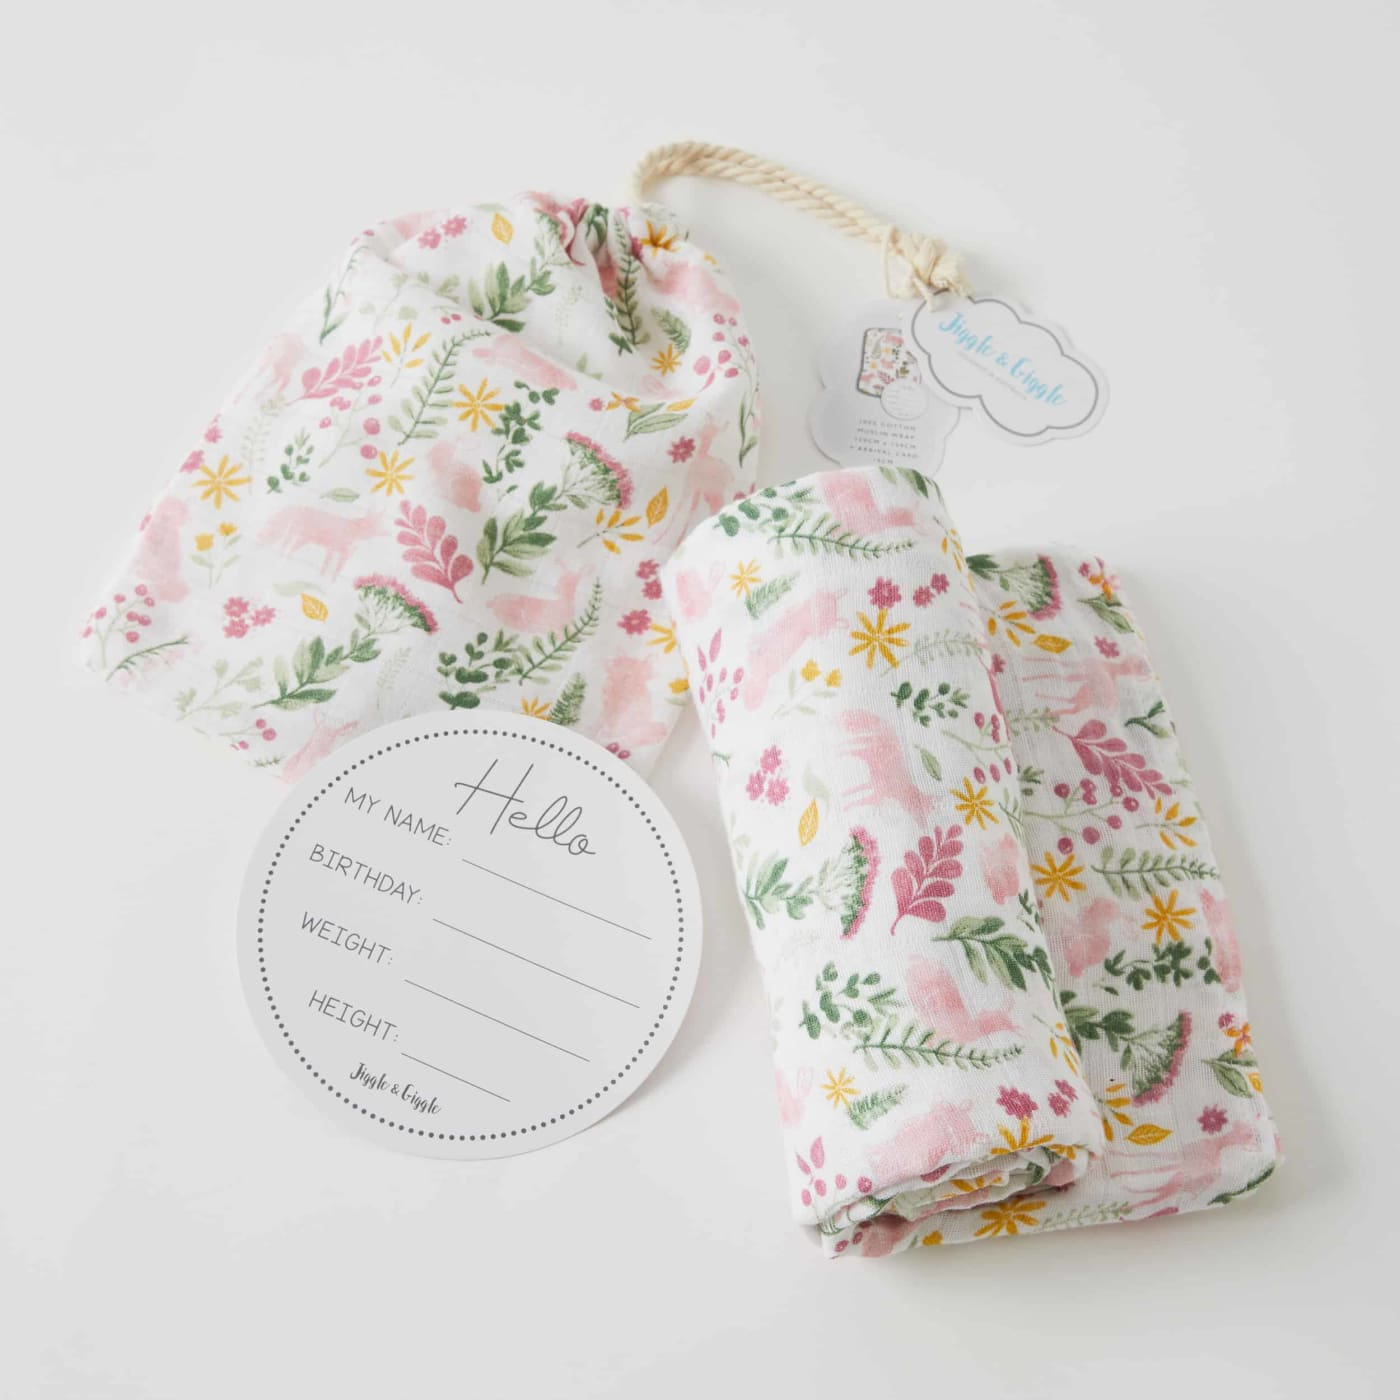 Jiggle & Giggle Muslin Wrap and Arrival Card - Earth Spirit - Earth Spirit - NURSERY & BEDTIME - SWADDLES/WRAPS